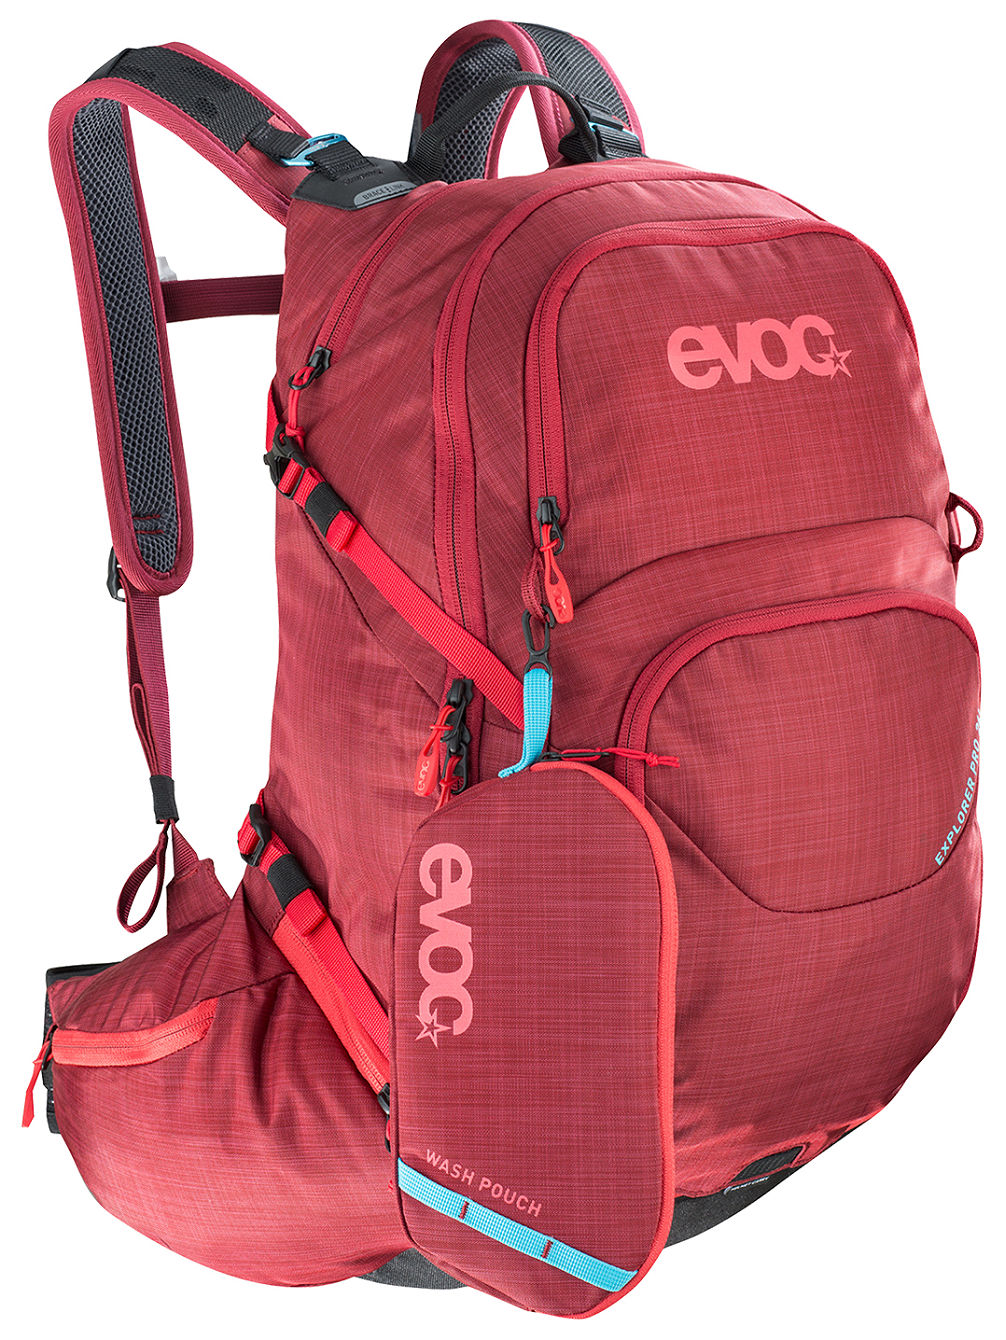 Explorer Pro 26L Backpack